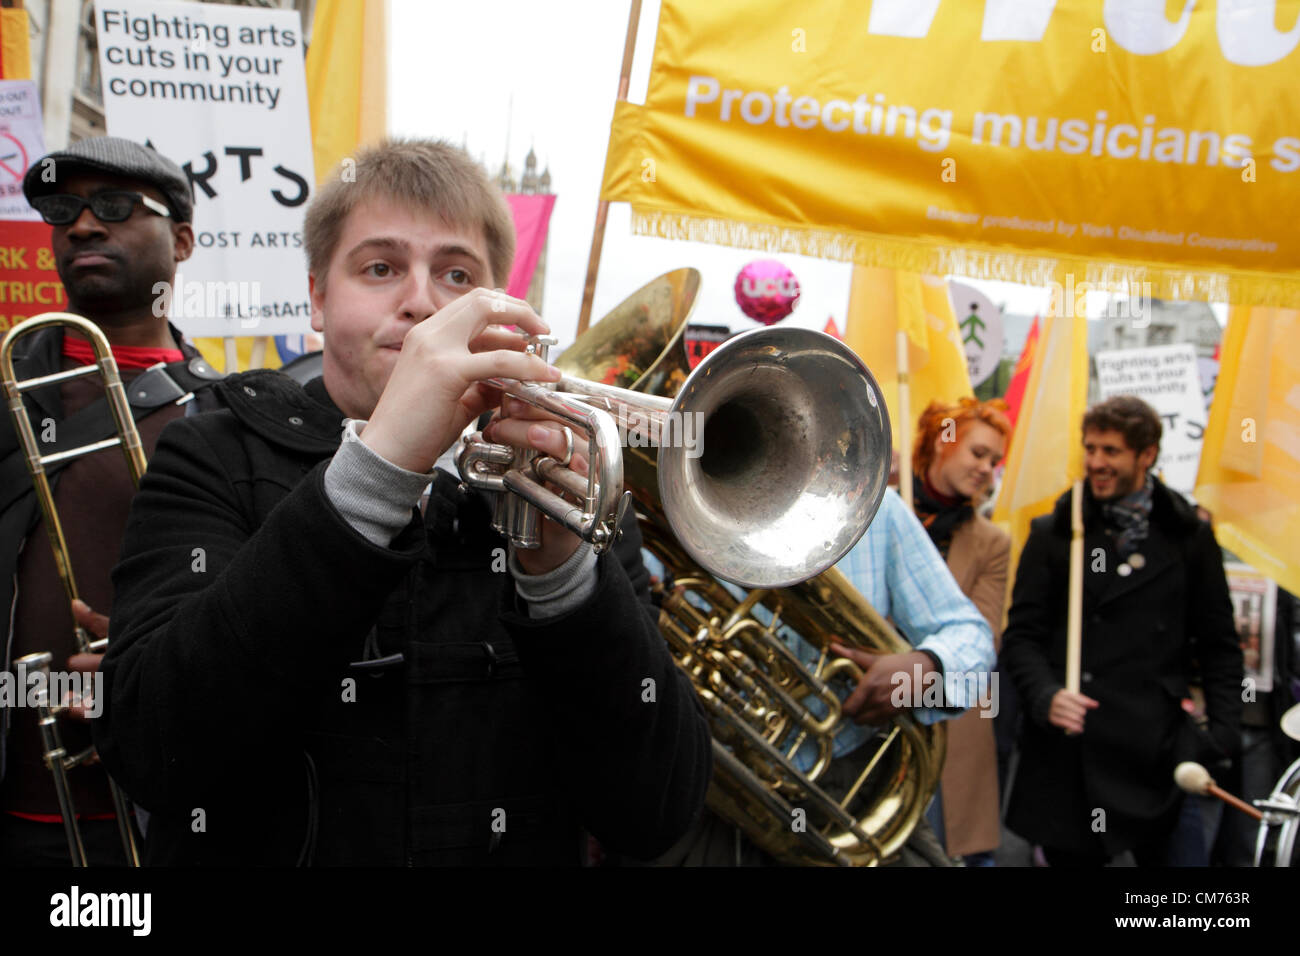 Musicians Union members take part in the TUC anti-austerity march. London, UK. 20th October 2012. - Stock Image